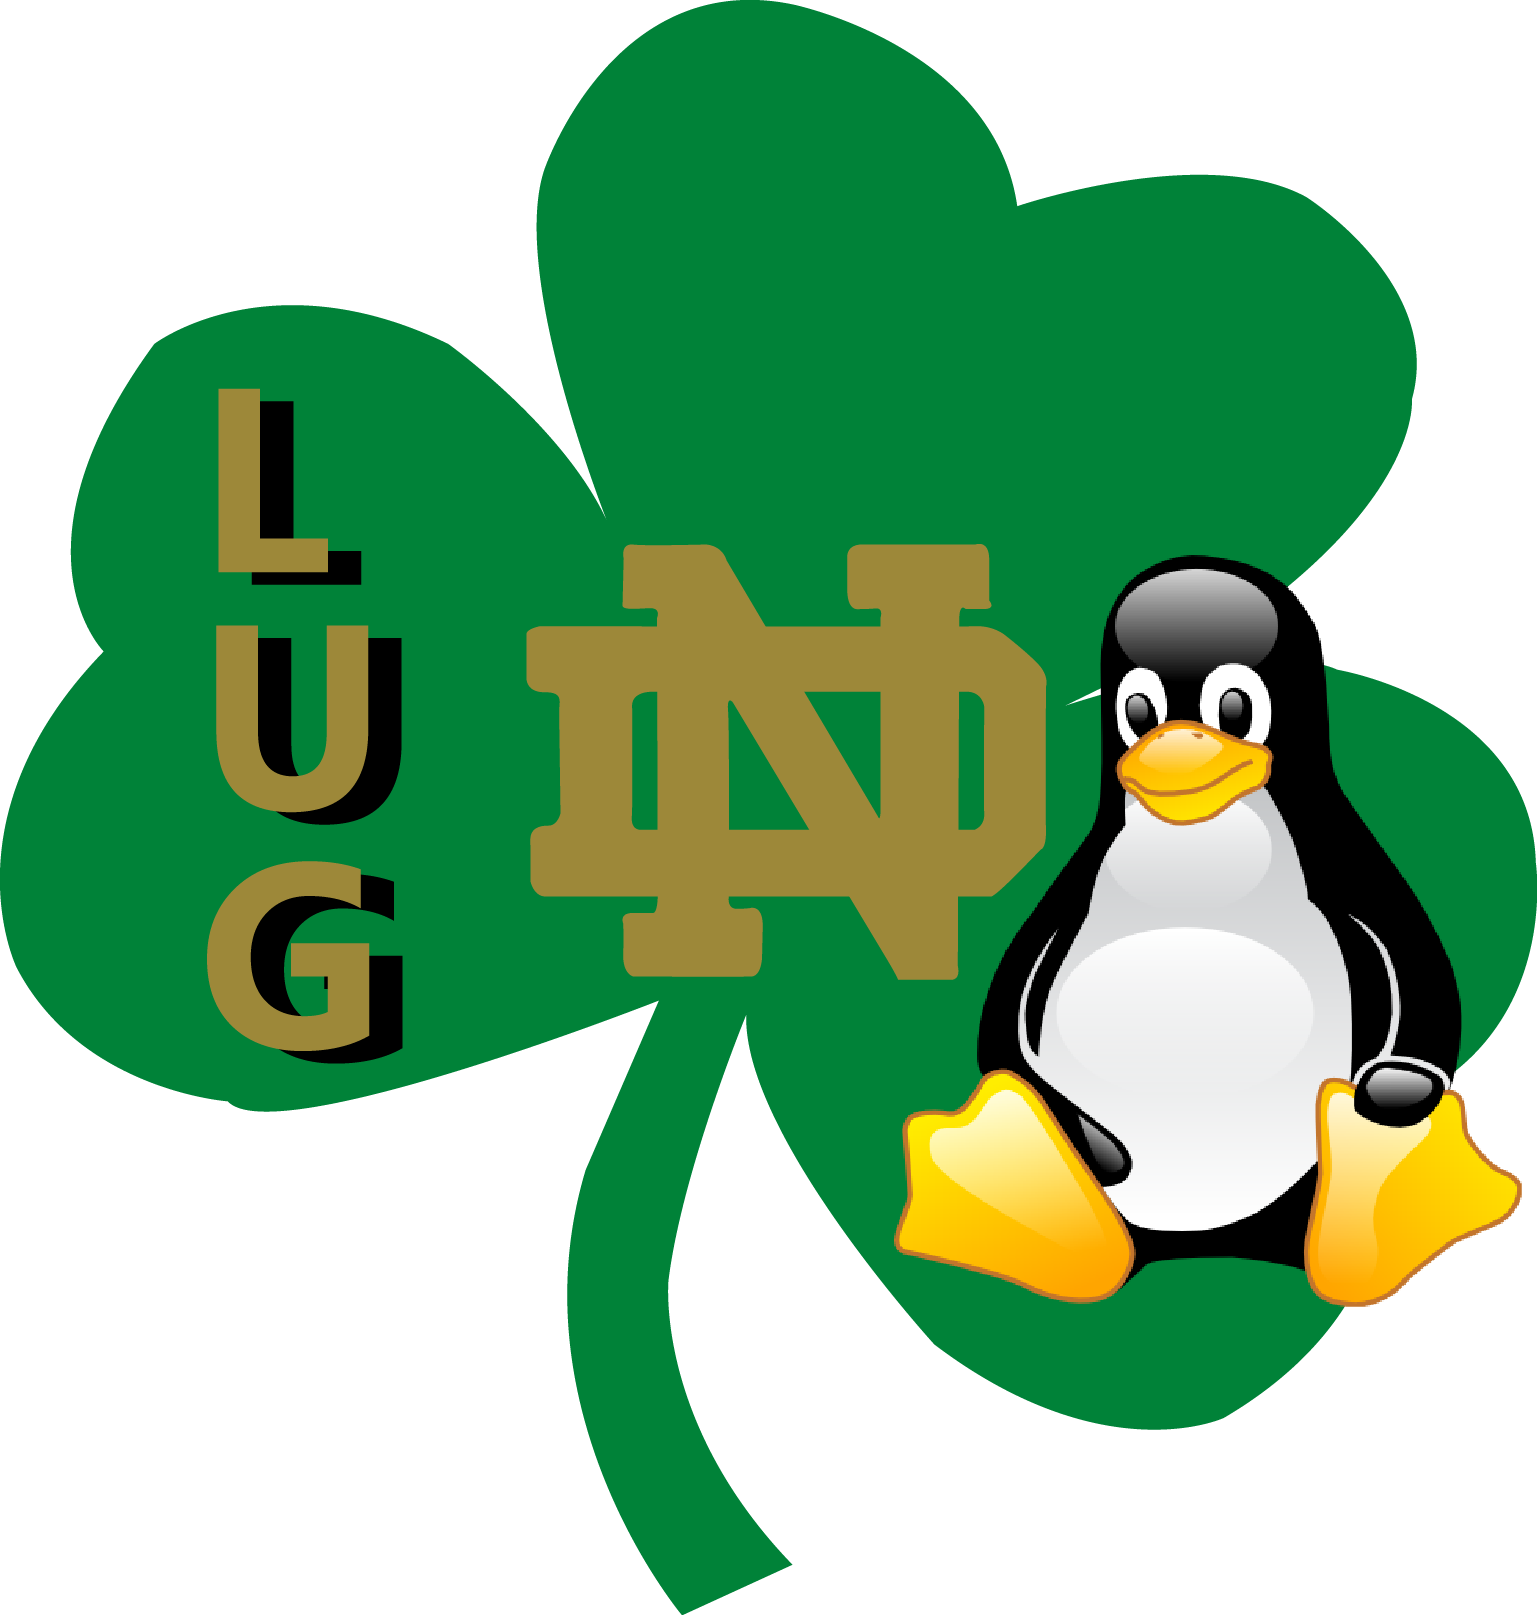 Notre dame football clipart clip library library Notre Dame Linux Users Group clip library library